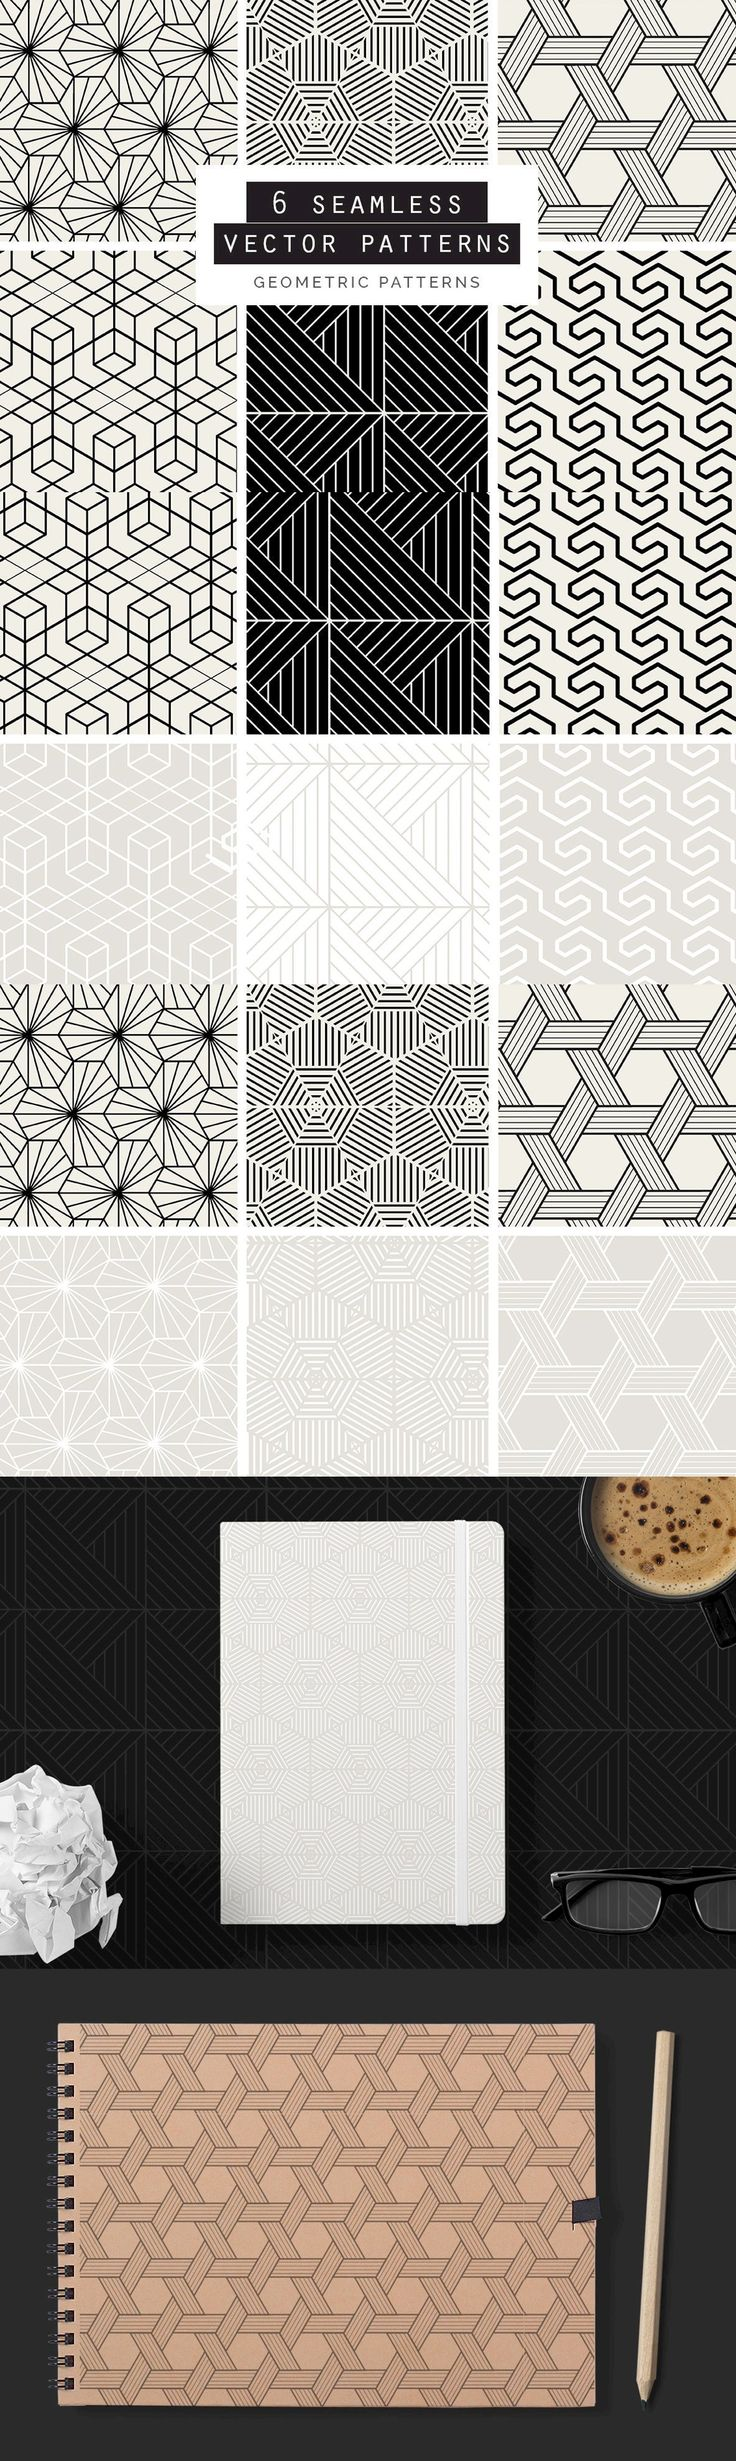 Geometric Seamless Vector Patterns - A great set of 6 Geometric Seamless Vector Patterns in both Black and ...